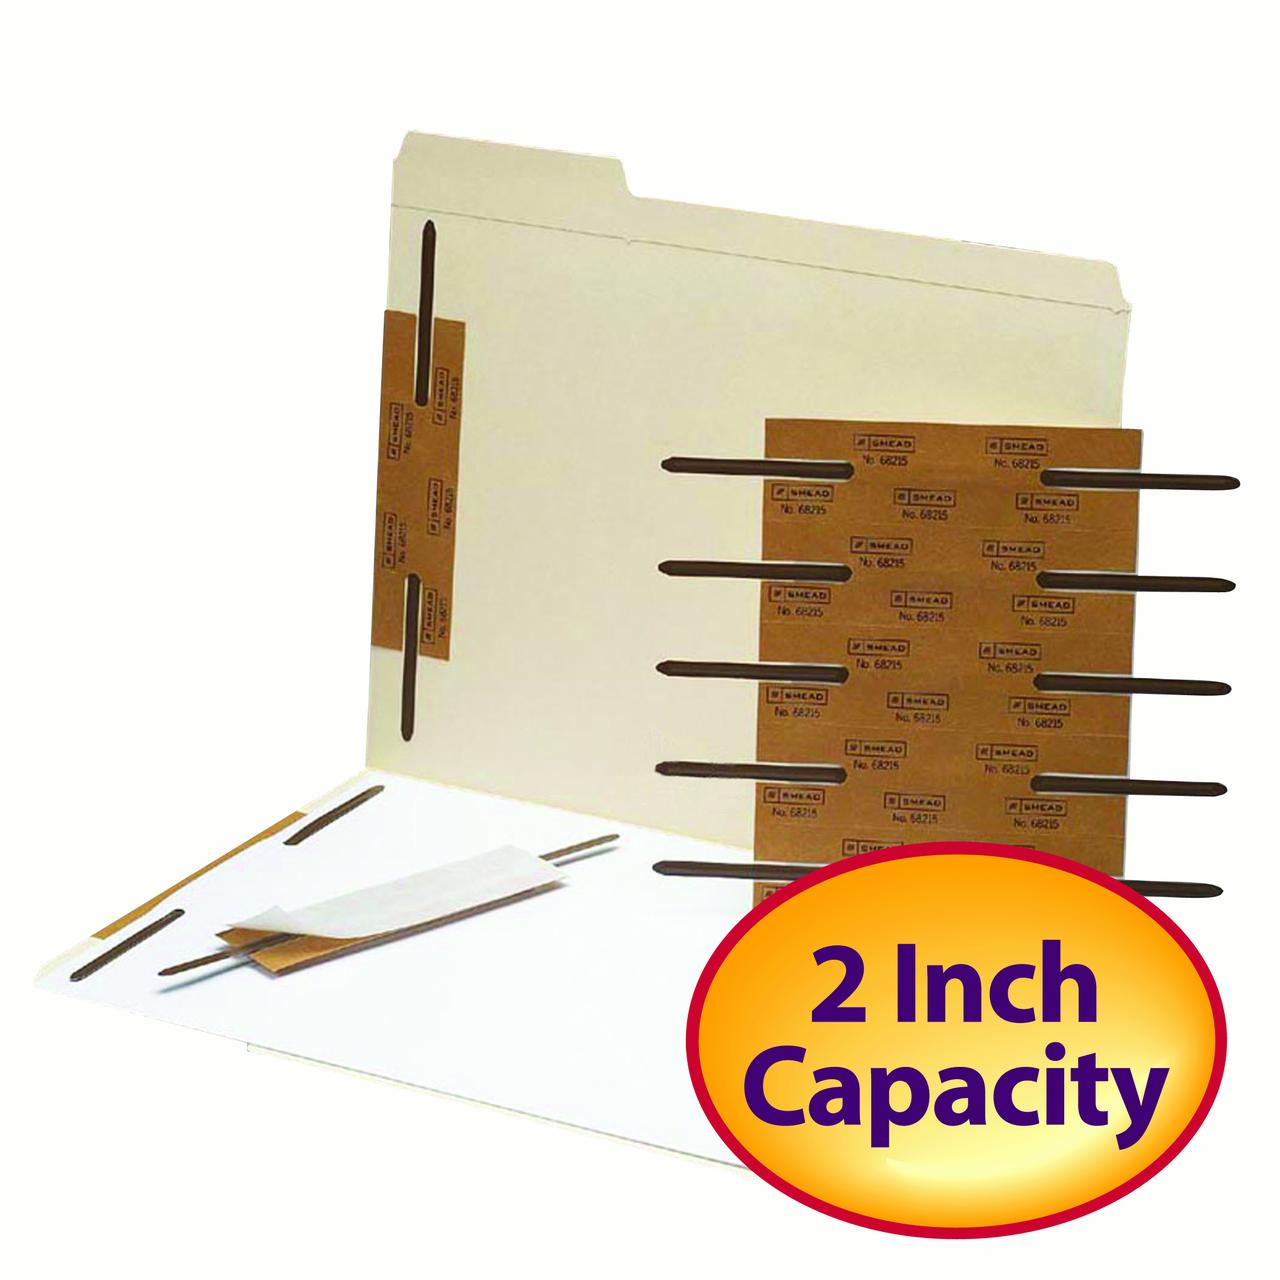 "Smead Self-Adhesive Metal Fastener, Reinforced, 2"" Capacity, Brown, 100 per Box (68215)"